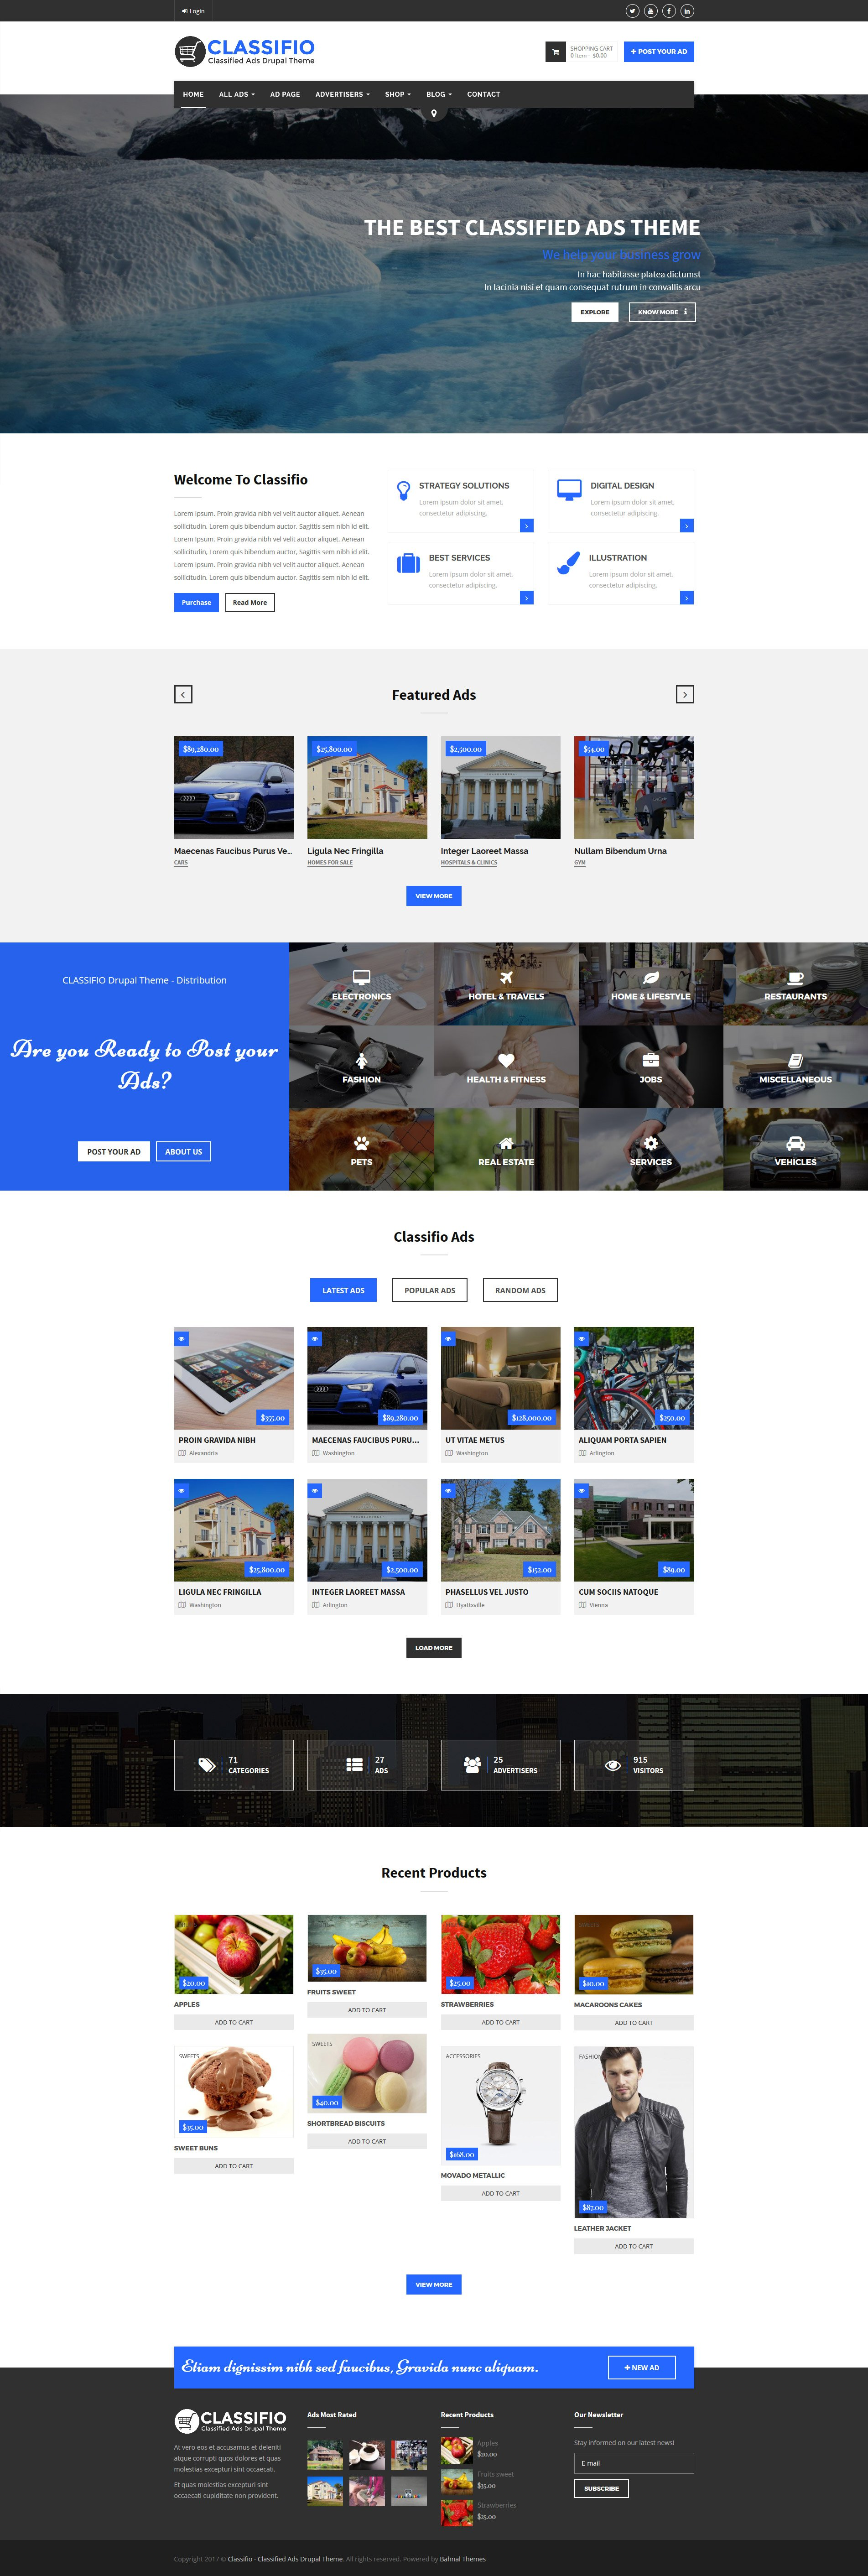 Website Design Template 63835 - listings classifieds responsive drupal google maps corporate business companies advertising